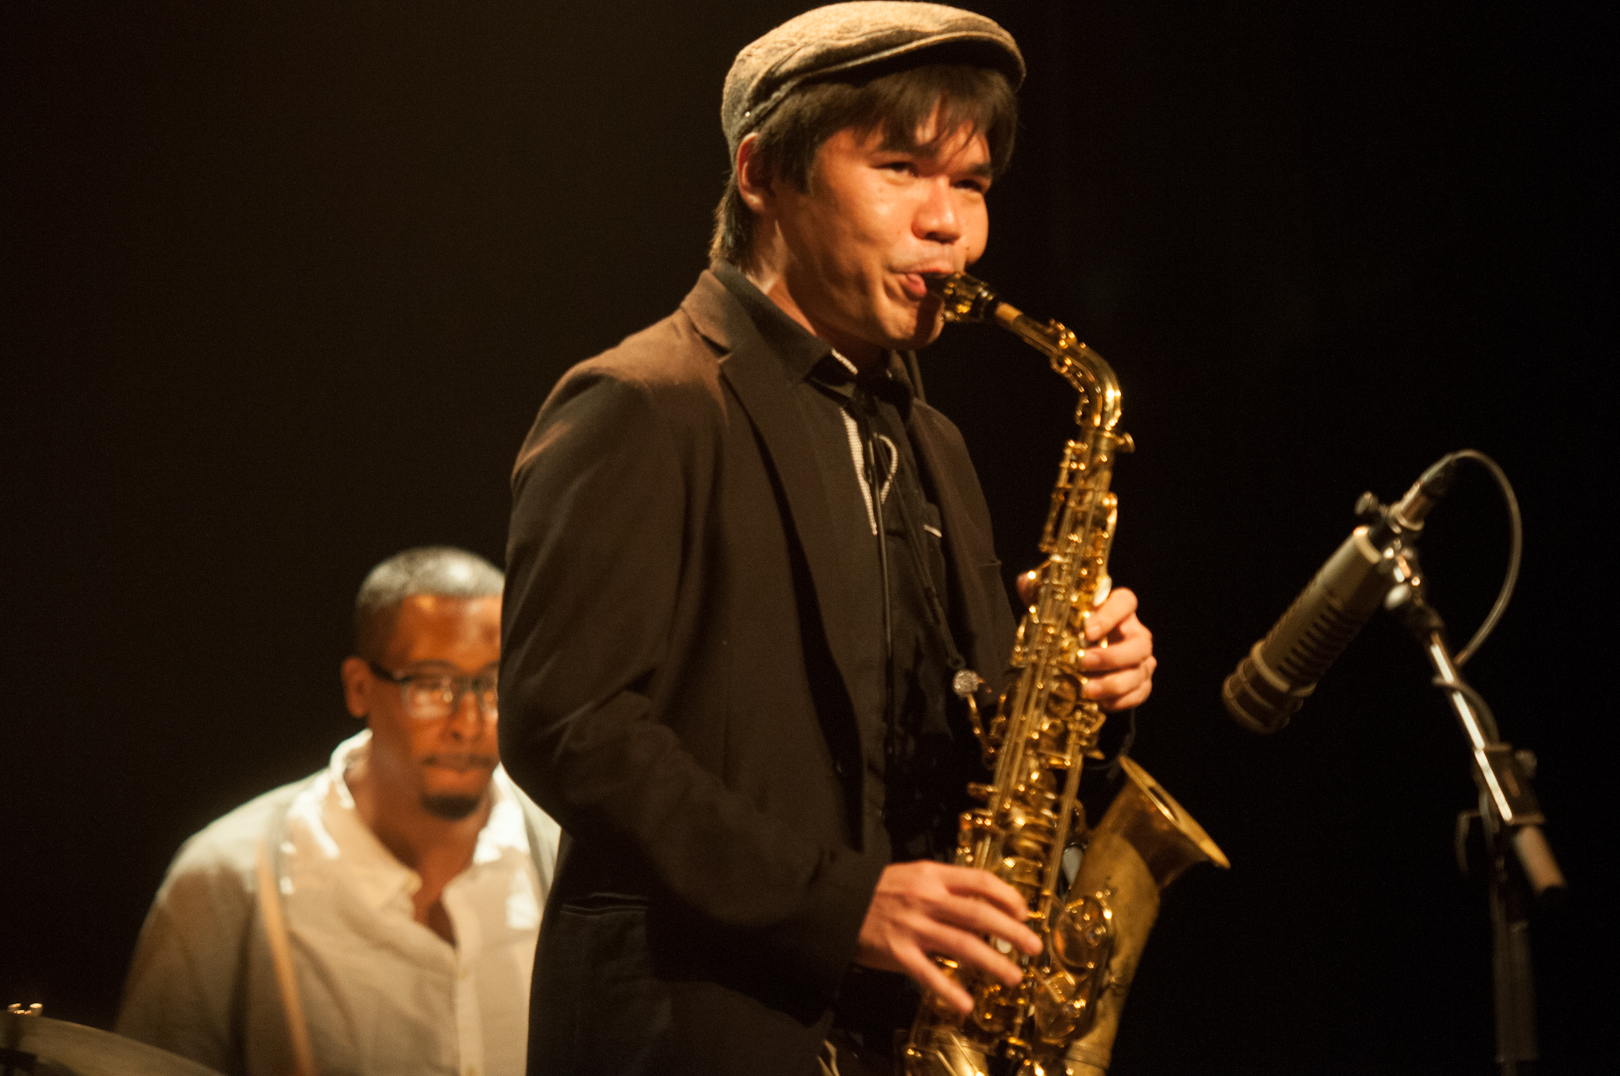 Yosuke Sato And Harold Emanuel With Gregory Porter At The Montreal International Jazz Festival 2012